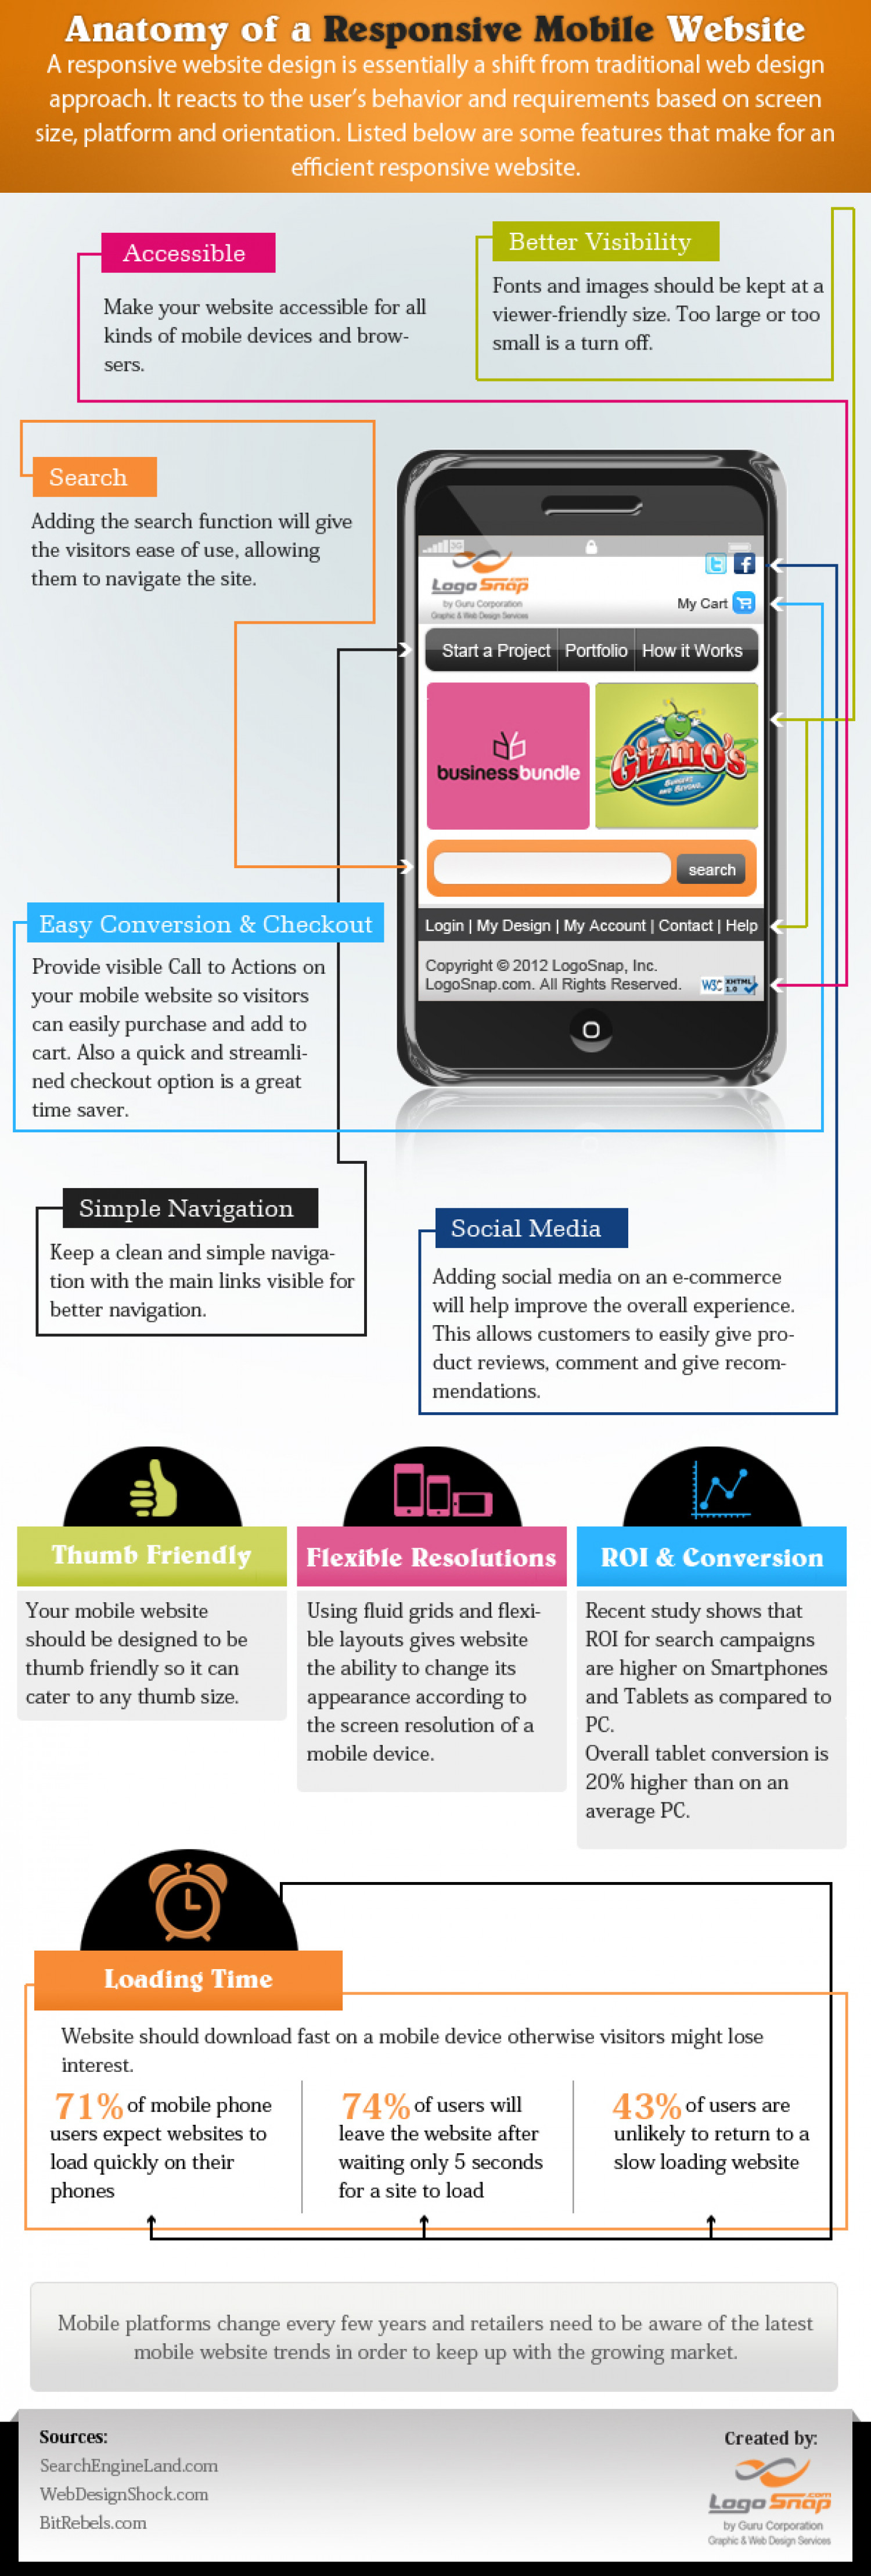 Structure of a Responsive Mobile Web Design Infographic